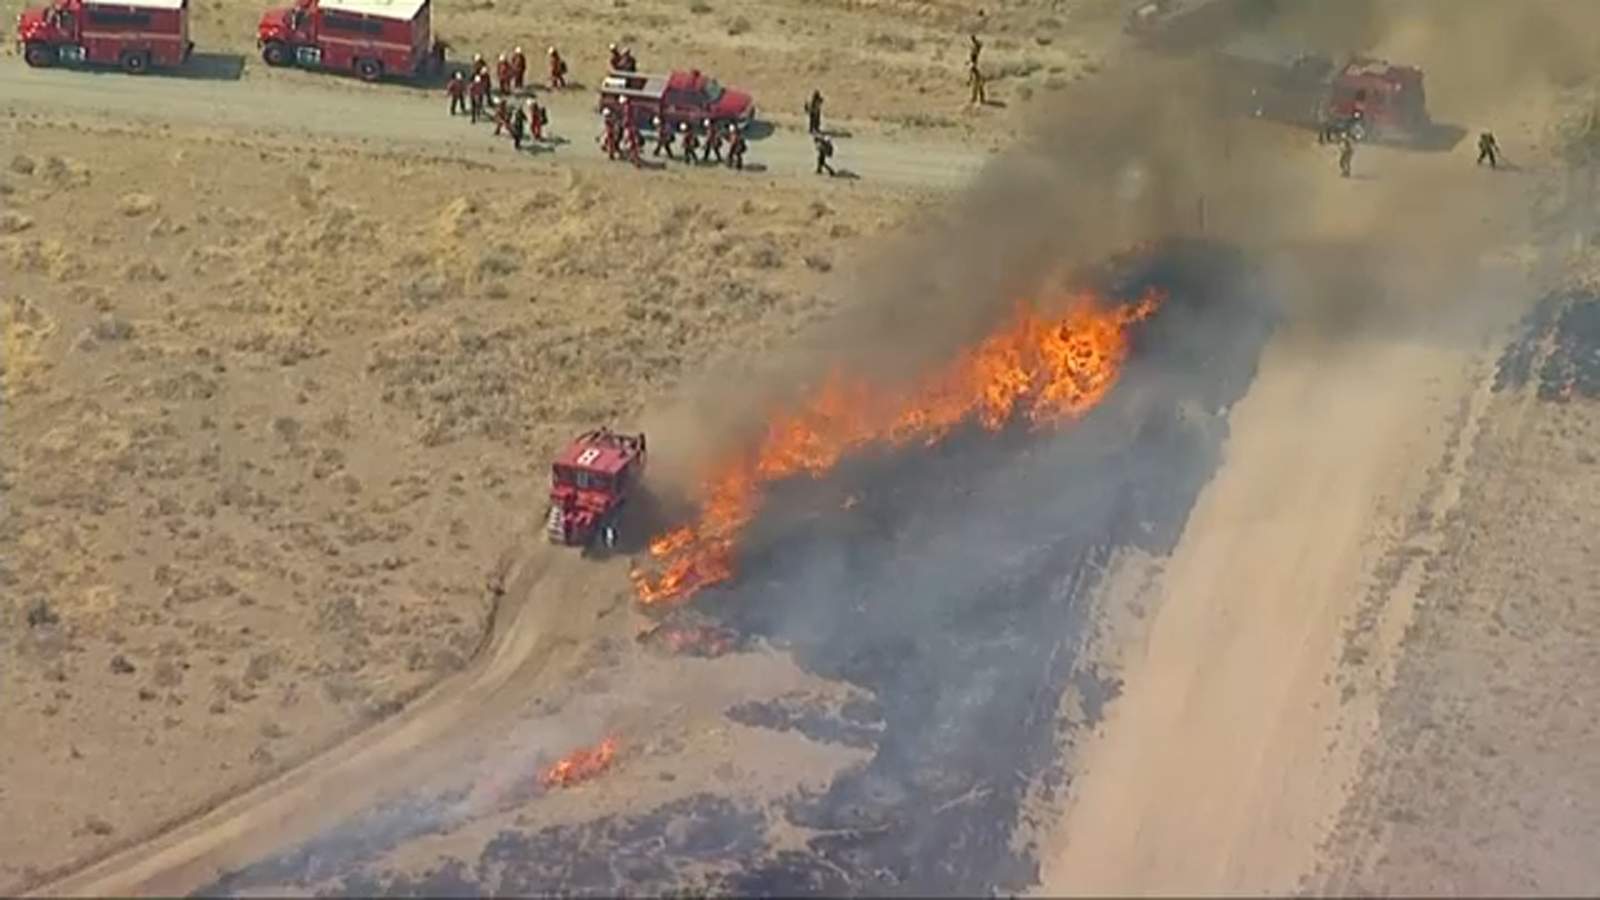 King Fire: Fast-moving brush fire erupts in Lancaster amid scorching temperatures, high winds